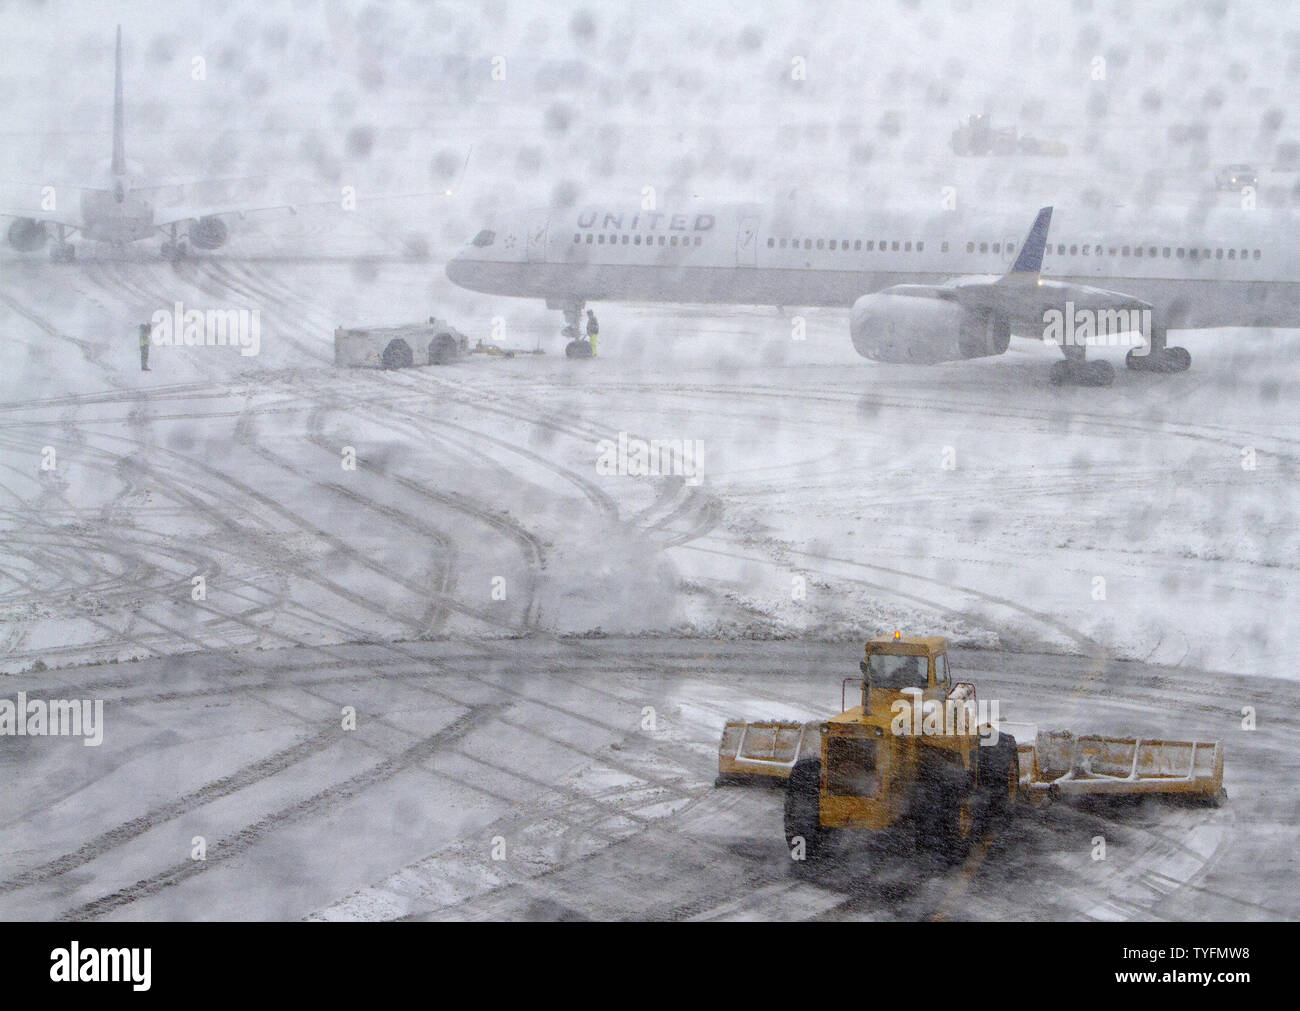 A snow removal plow begins to clear taxi areas of snowfall at Newark Airport in Newark, New Jersey on February 3, 2014.  6-8 of inches of snow expected to fall in the tri-state area causes travel delays and cancellations.    UPI/Gary C. Caskey - Stock Image